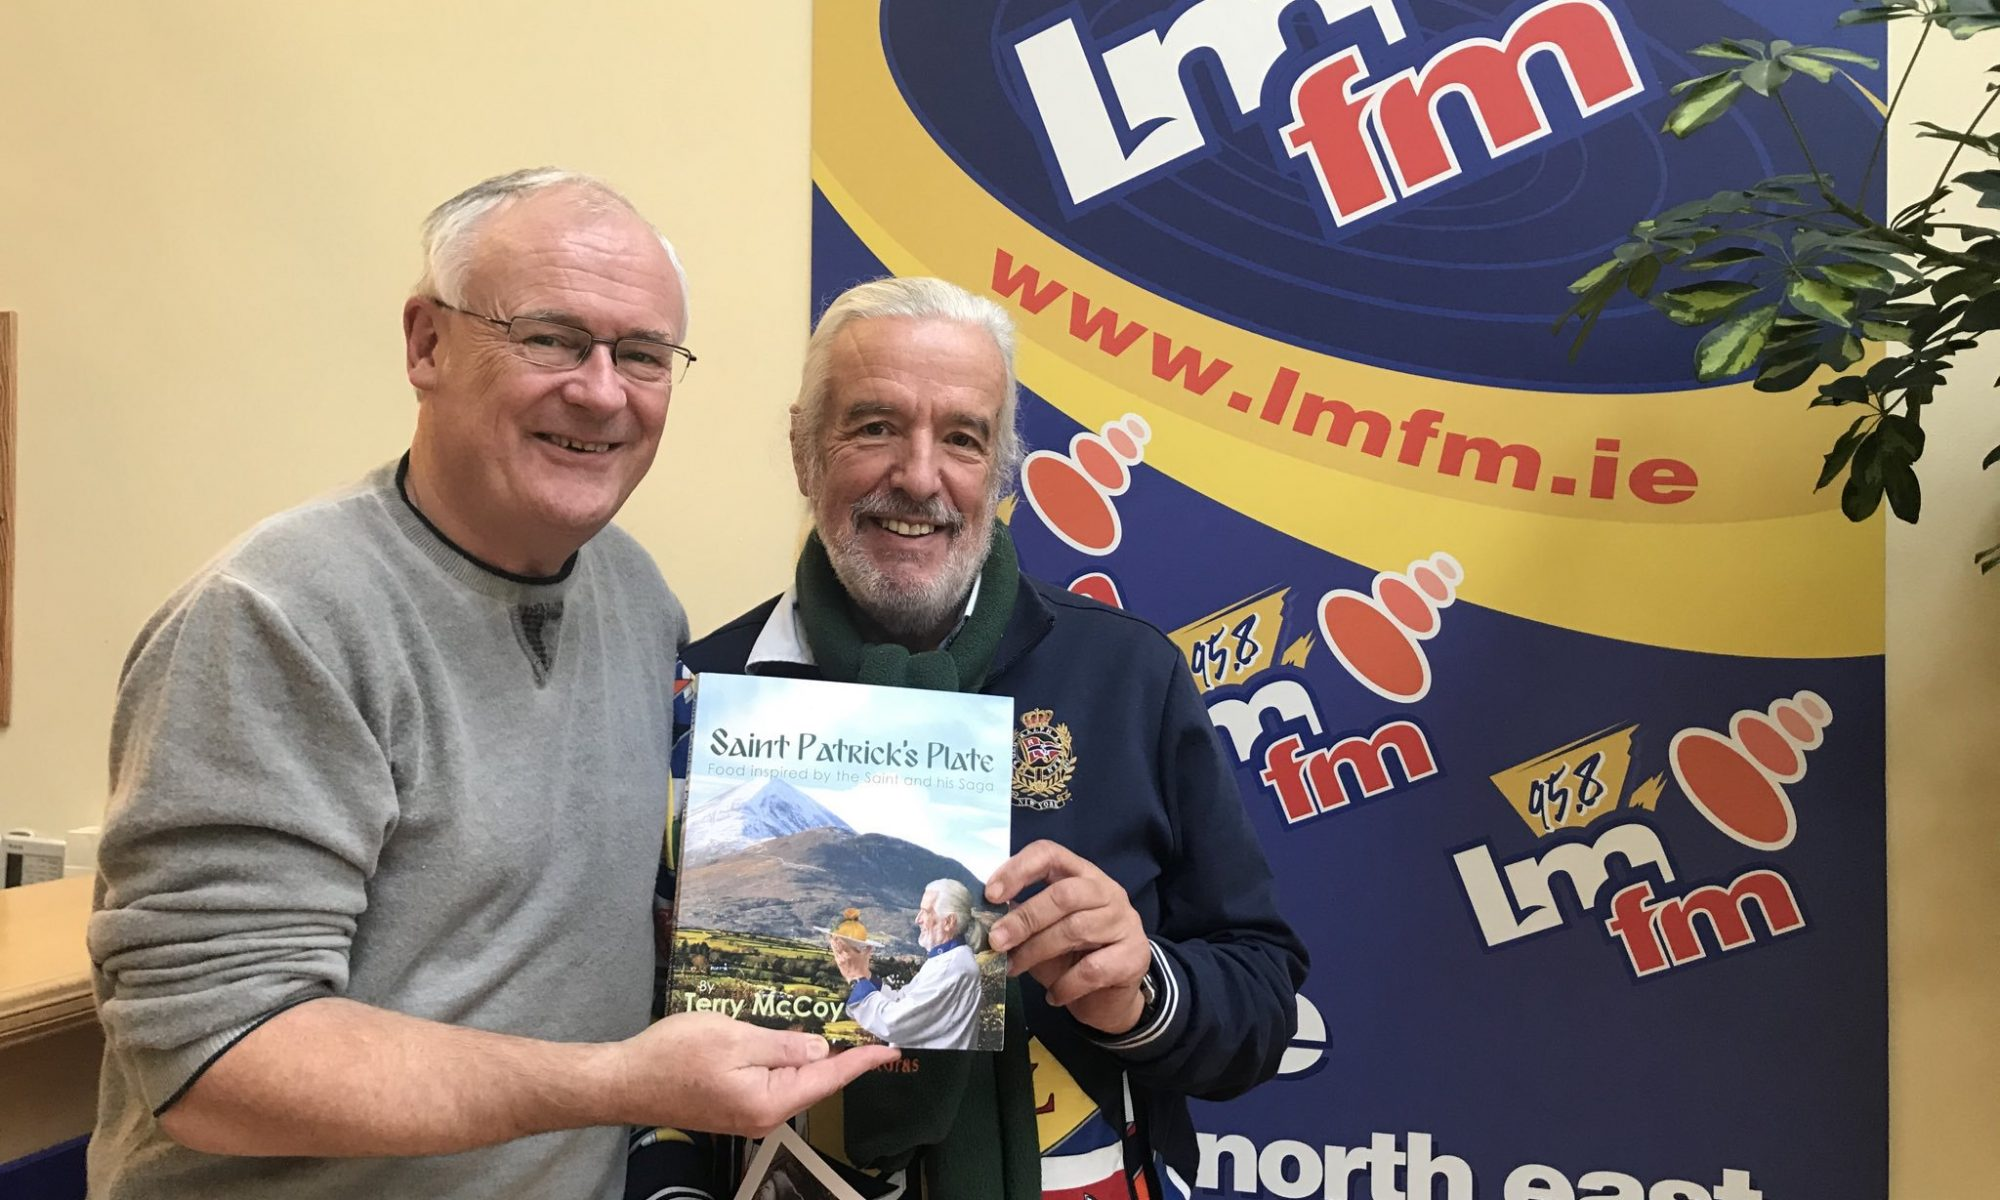 Terry McCoy - Gerry Kelly - LMFM - Radio interview - Saint Patrick